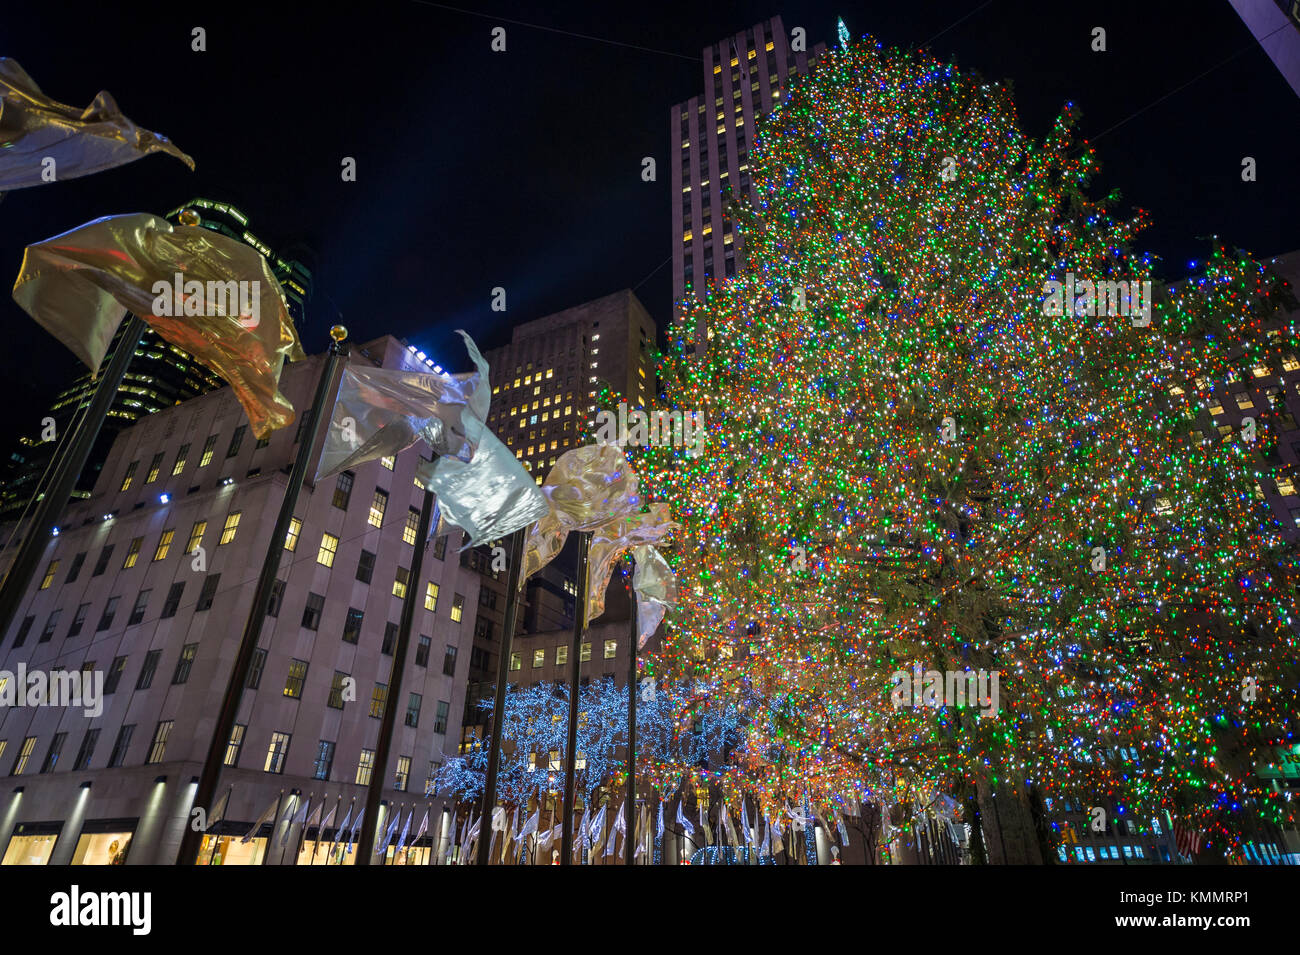 Holiday flags fly around the central plaza in front of the Rockefeller Center Christmas Tree, one of New York City's - Stock Image